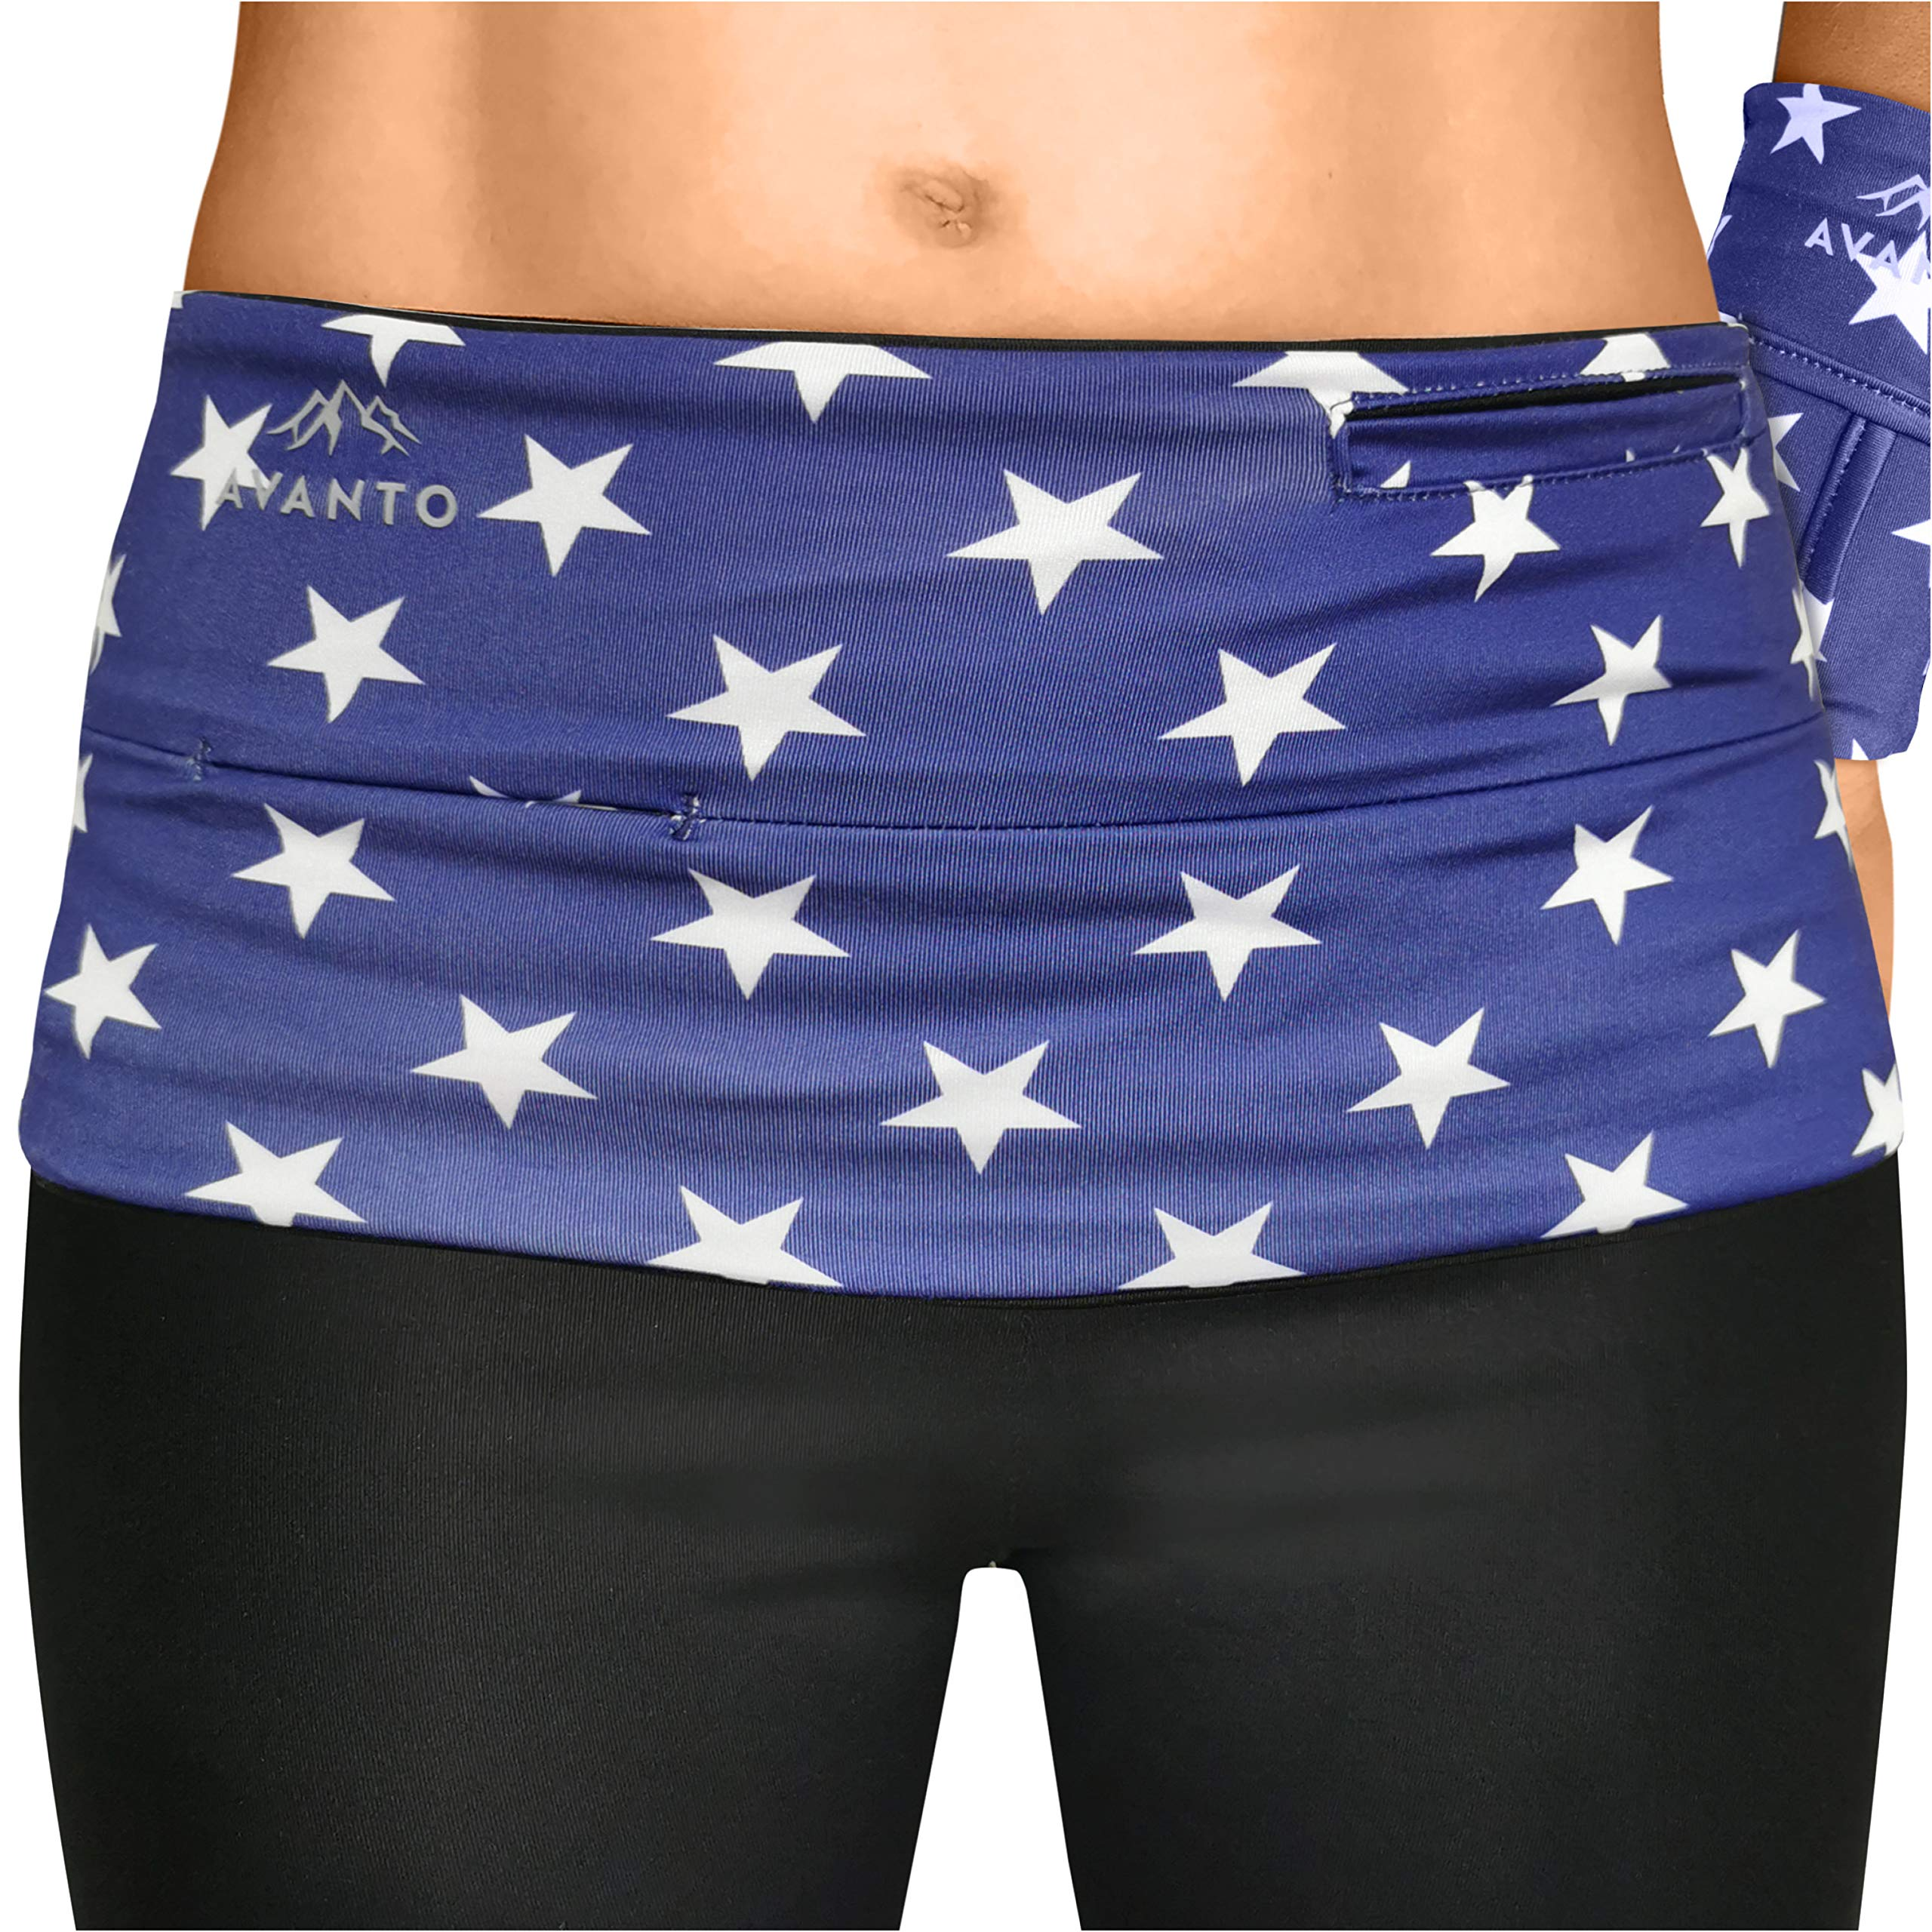 AVANTO Slim Fit Travel Money Belt with Free Wrist Wallet, Running Belt, Waist and Fanny Pack for Travel, for Women and Men, Comfortable Like Second Skin, Blue Stars, XL by Avanto Lifestyle